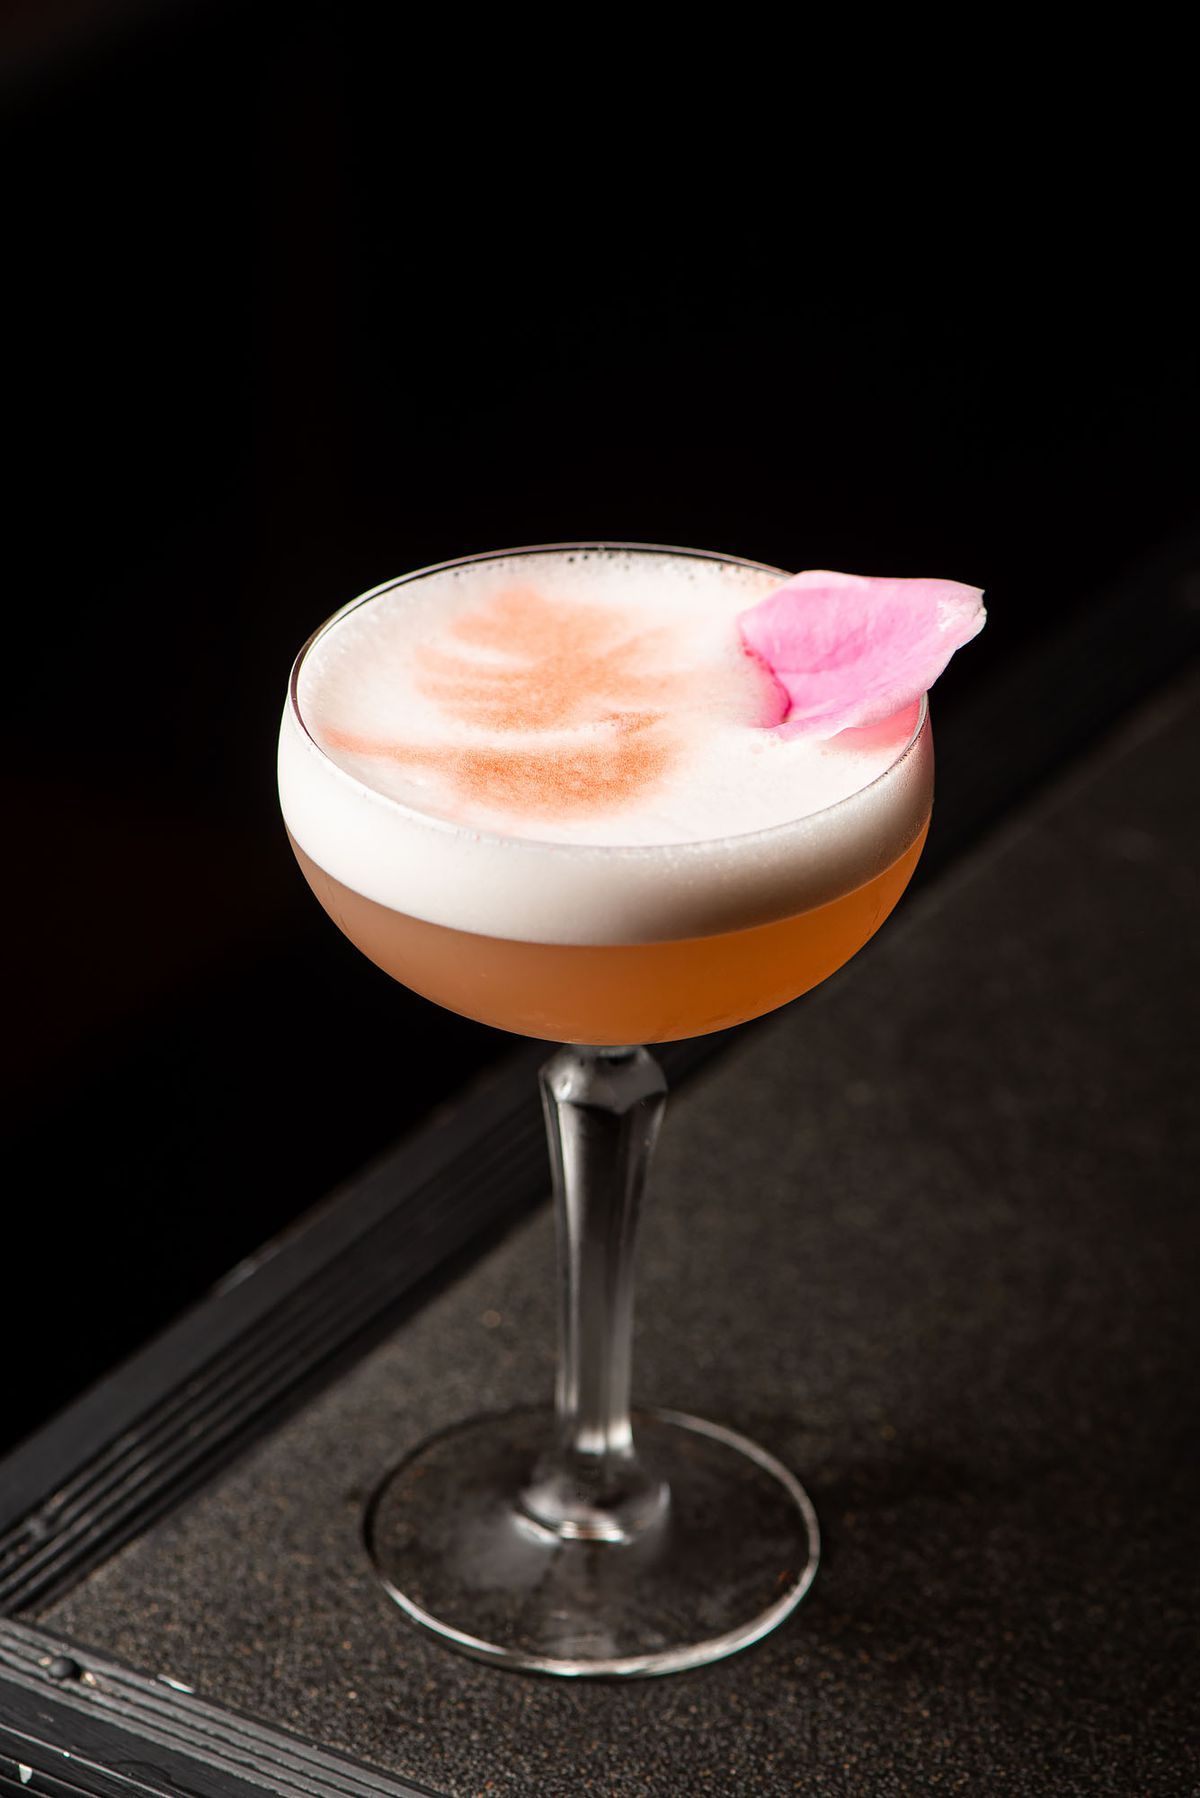 Desert rose cocktail at Canary Club.